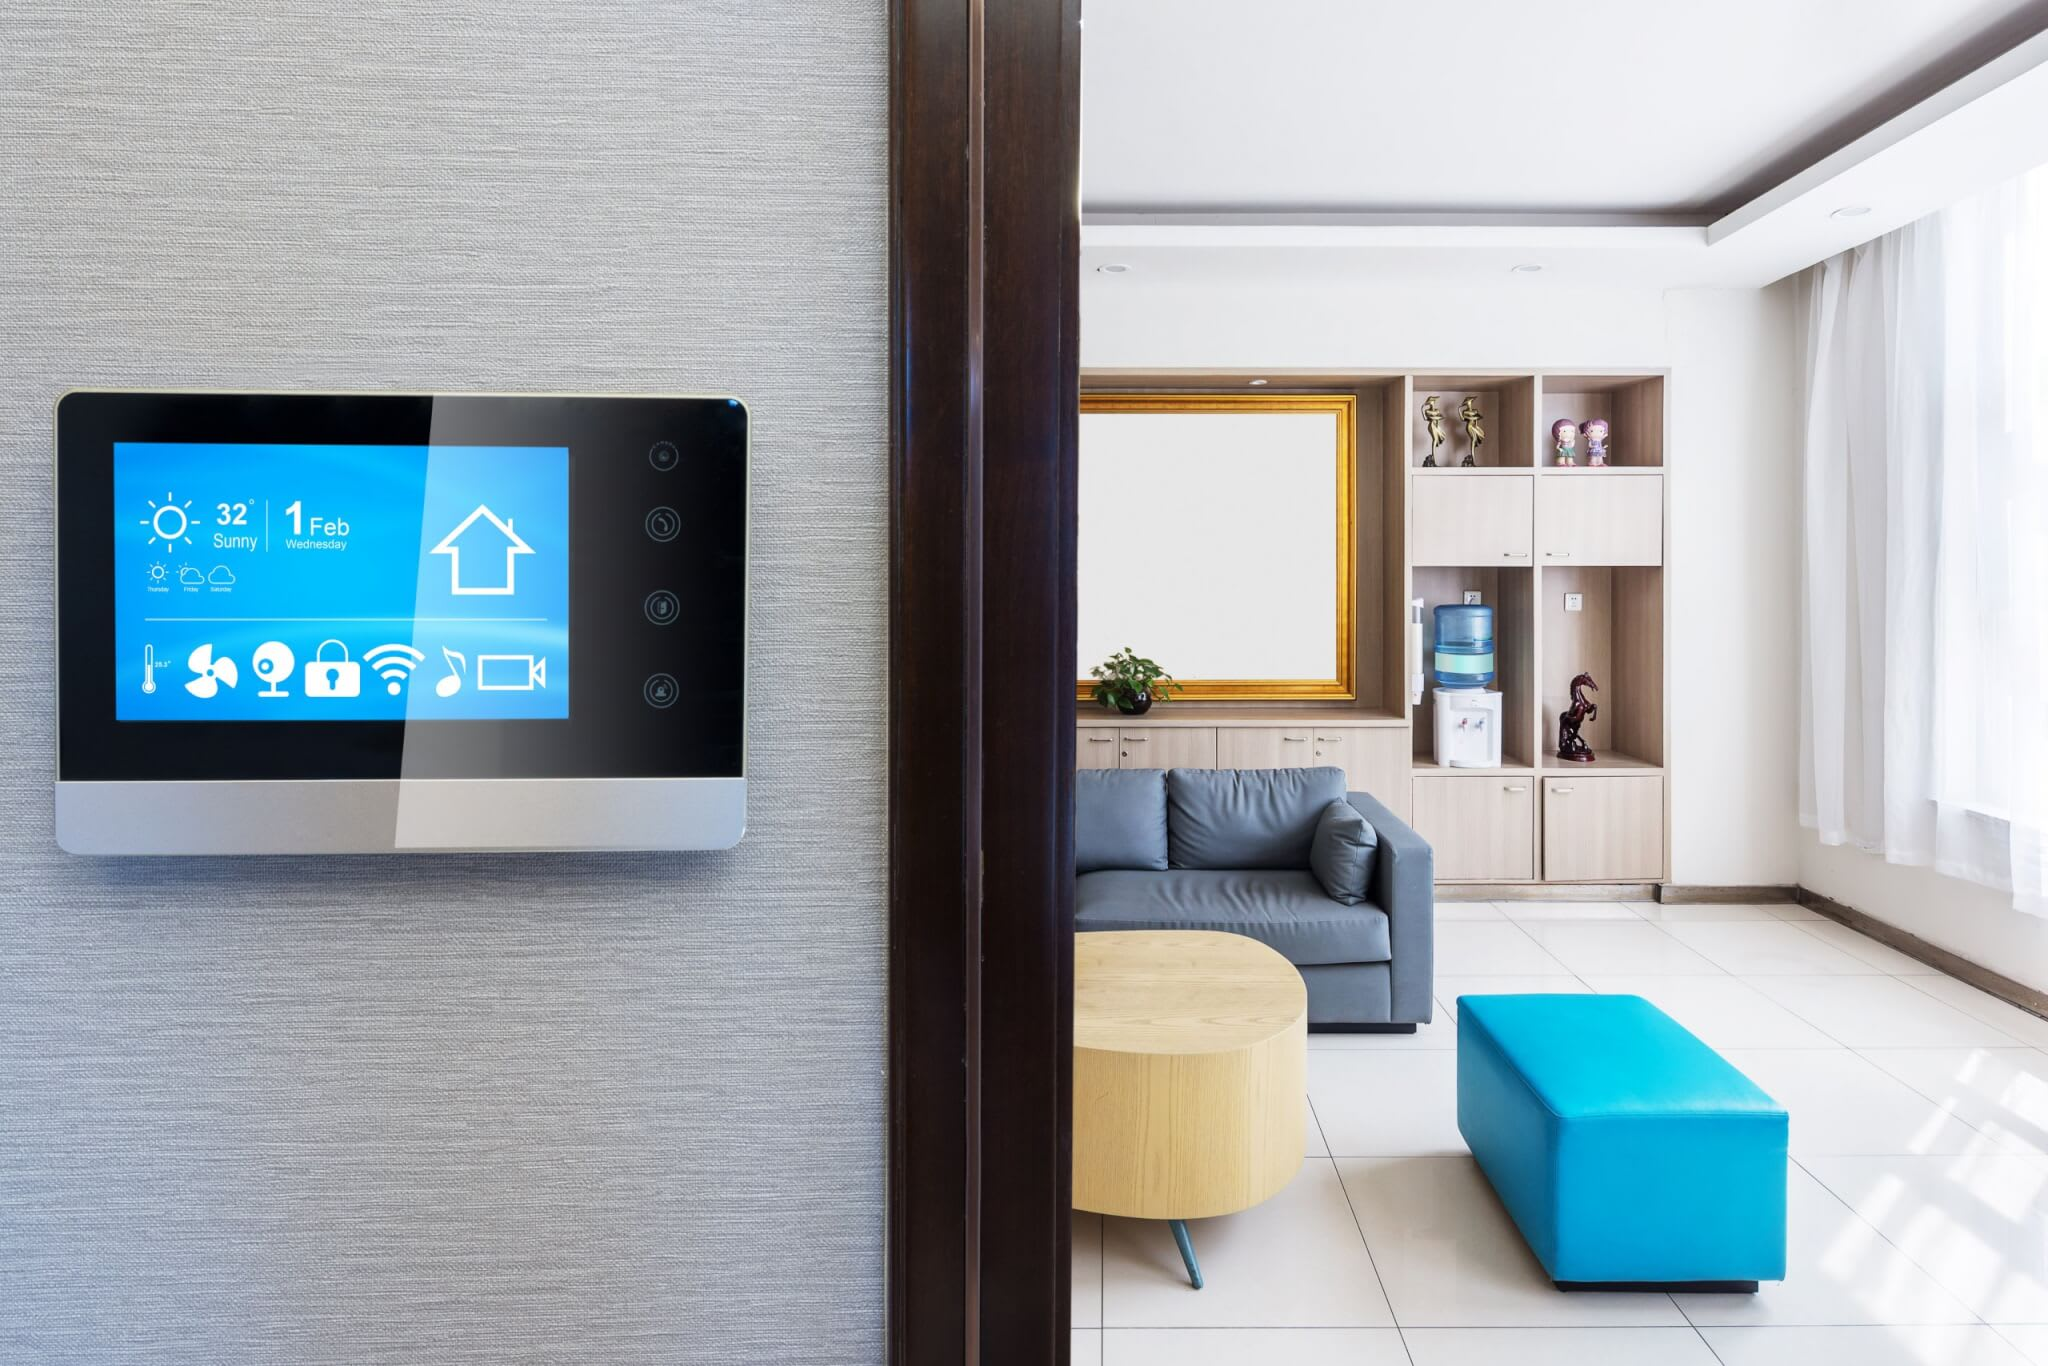 Install an automated home system in your short-term property rentals